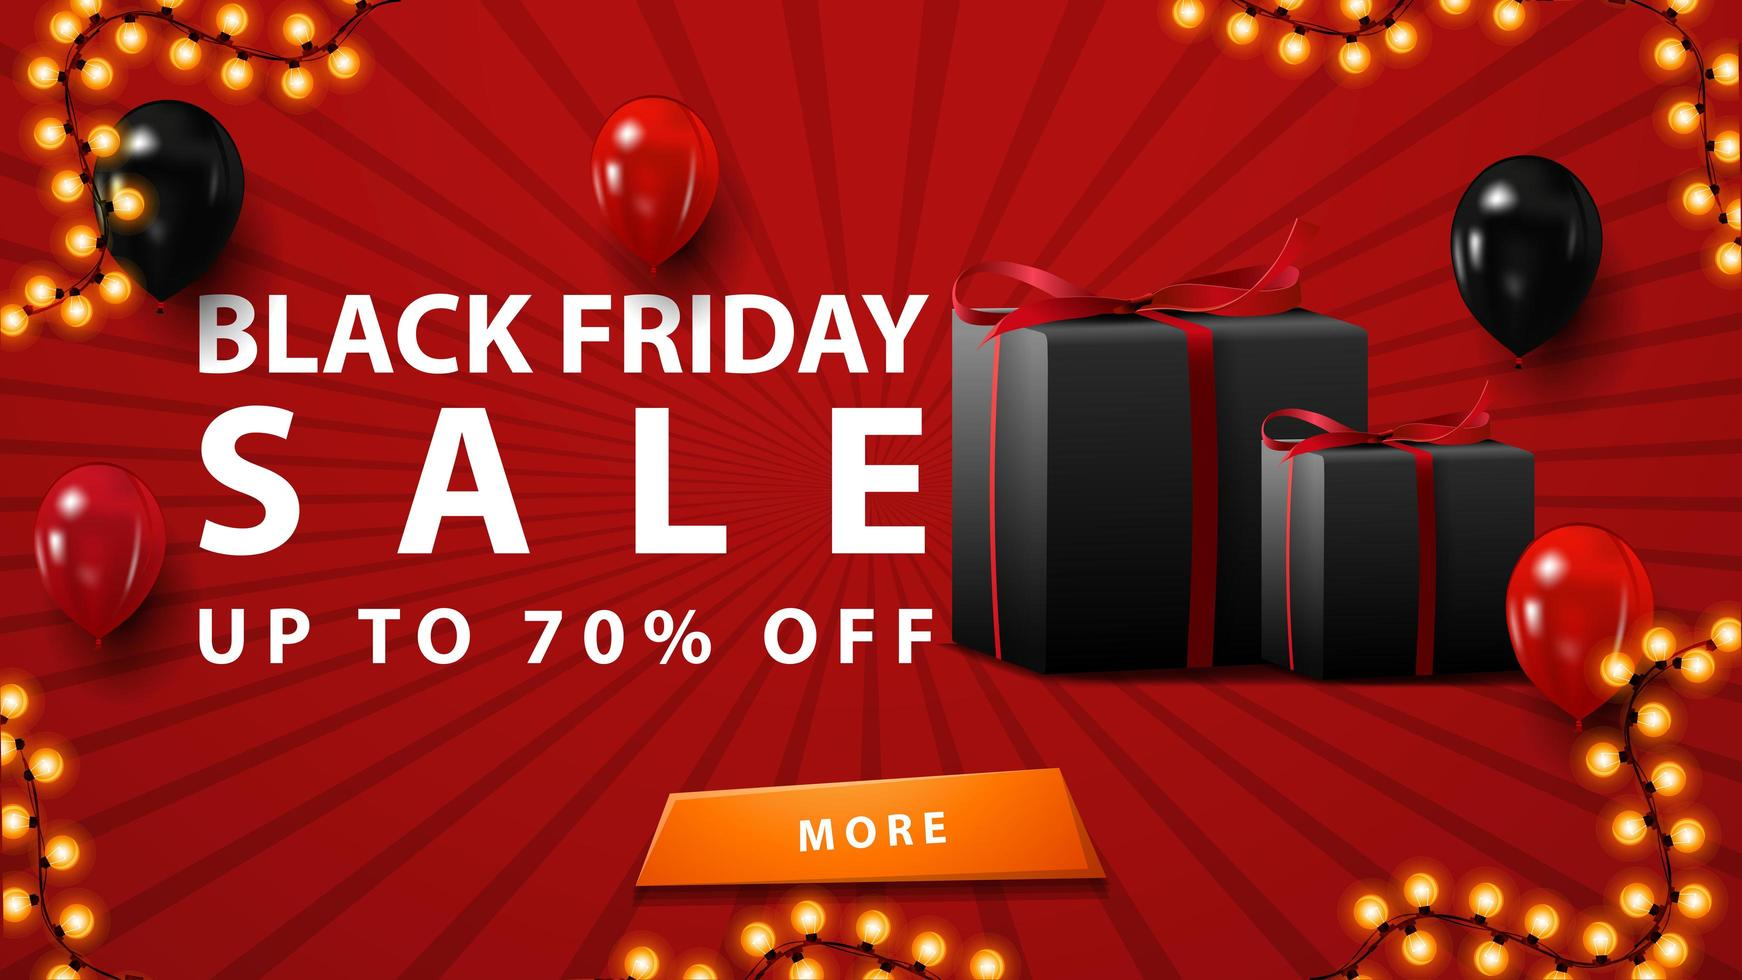 Black Friday sale, up to 70 off, discount red banner in minimalistic modern style with balloons and gifts. vector